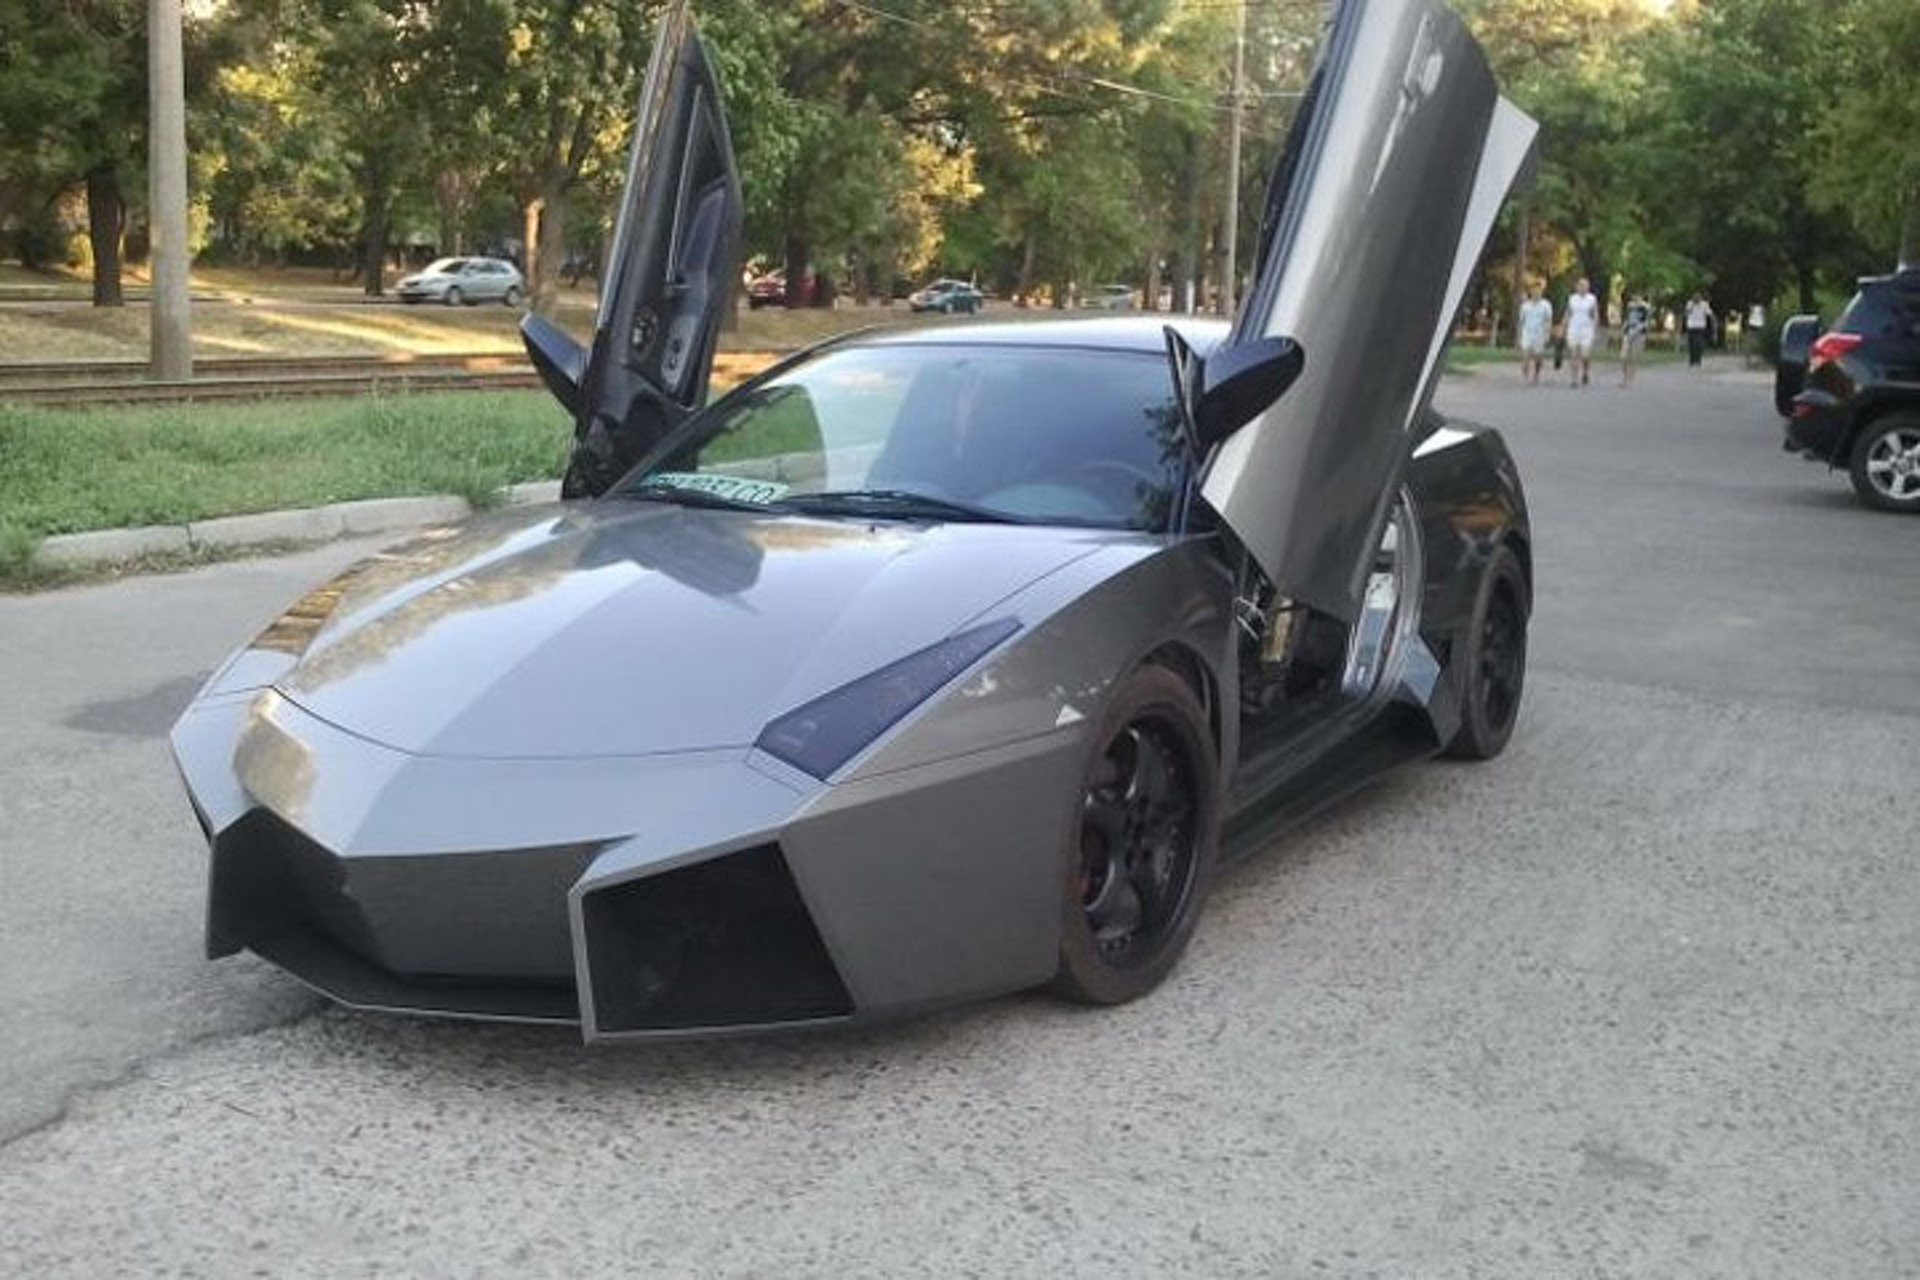 Remember When a Guy Turned a Mitsubishi into a Lamborghini?